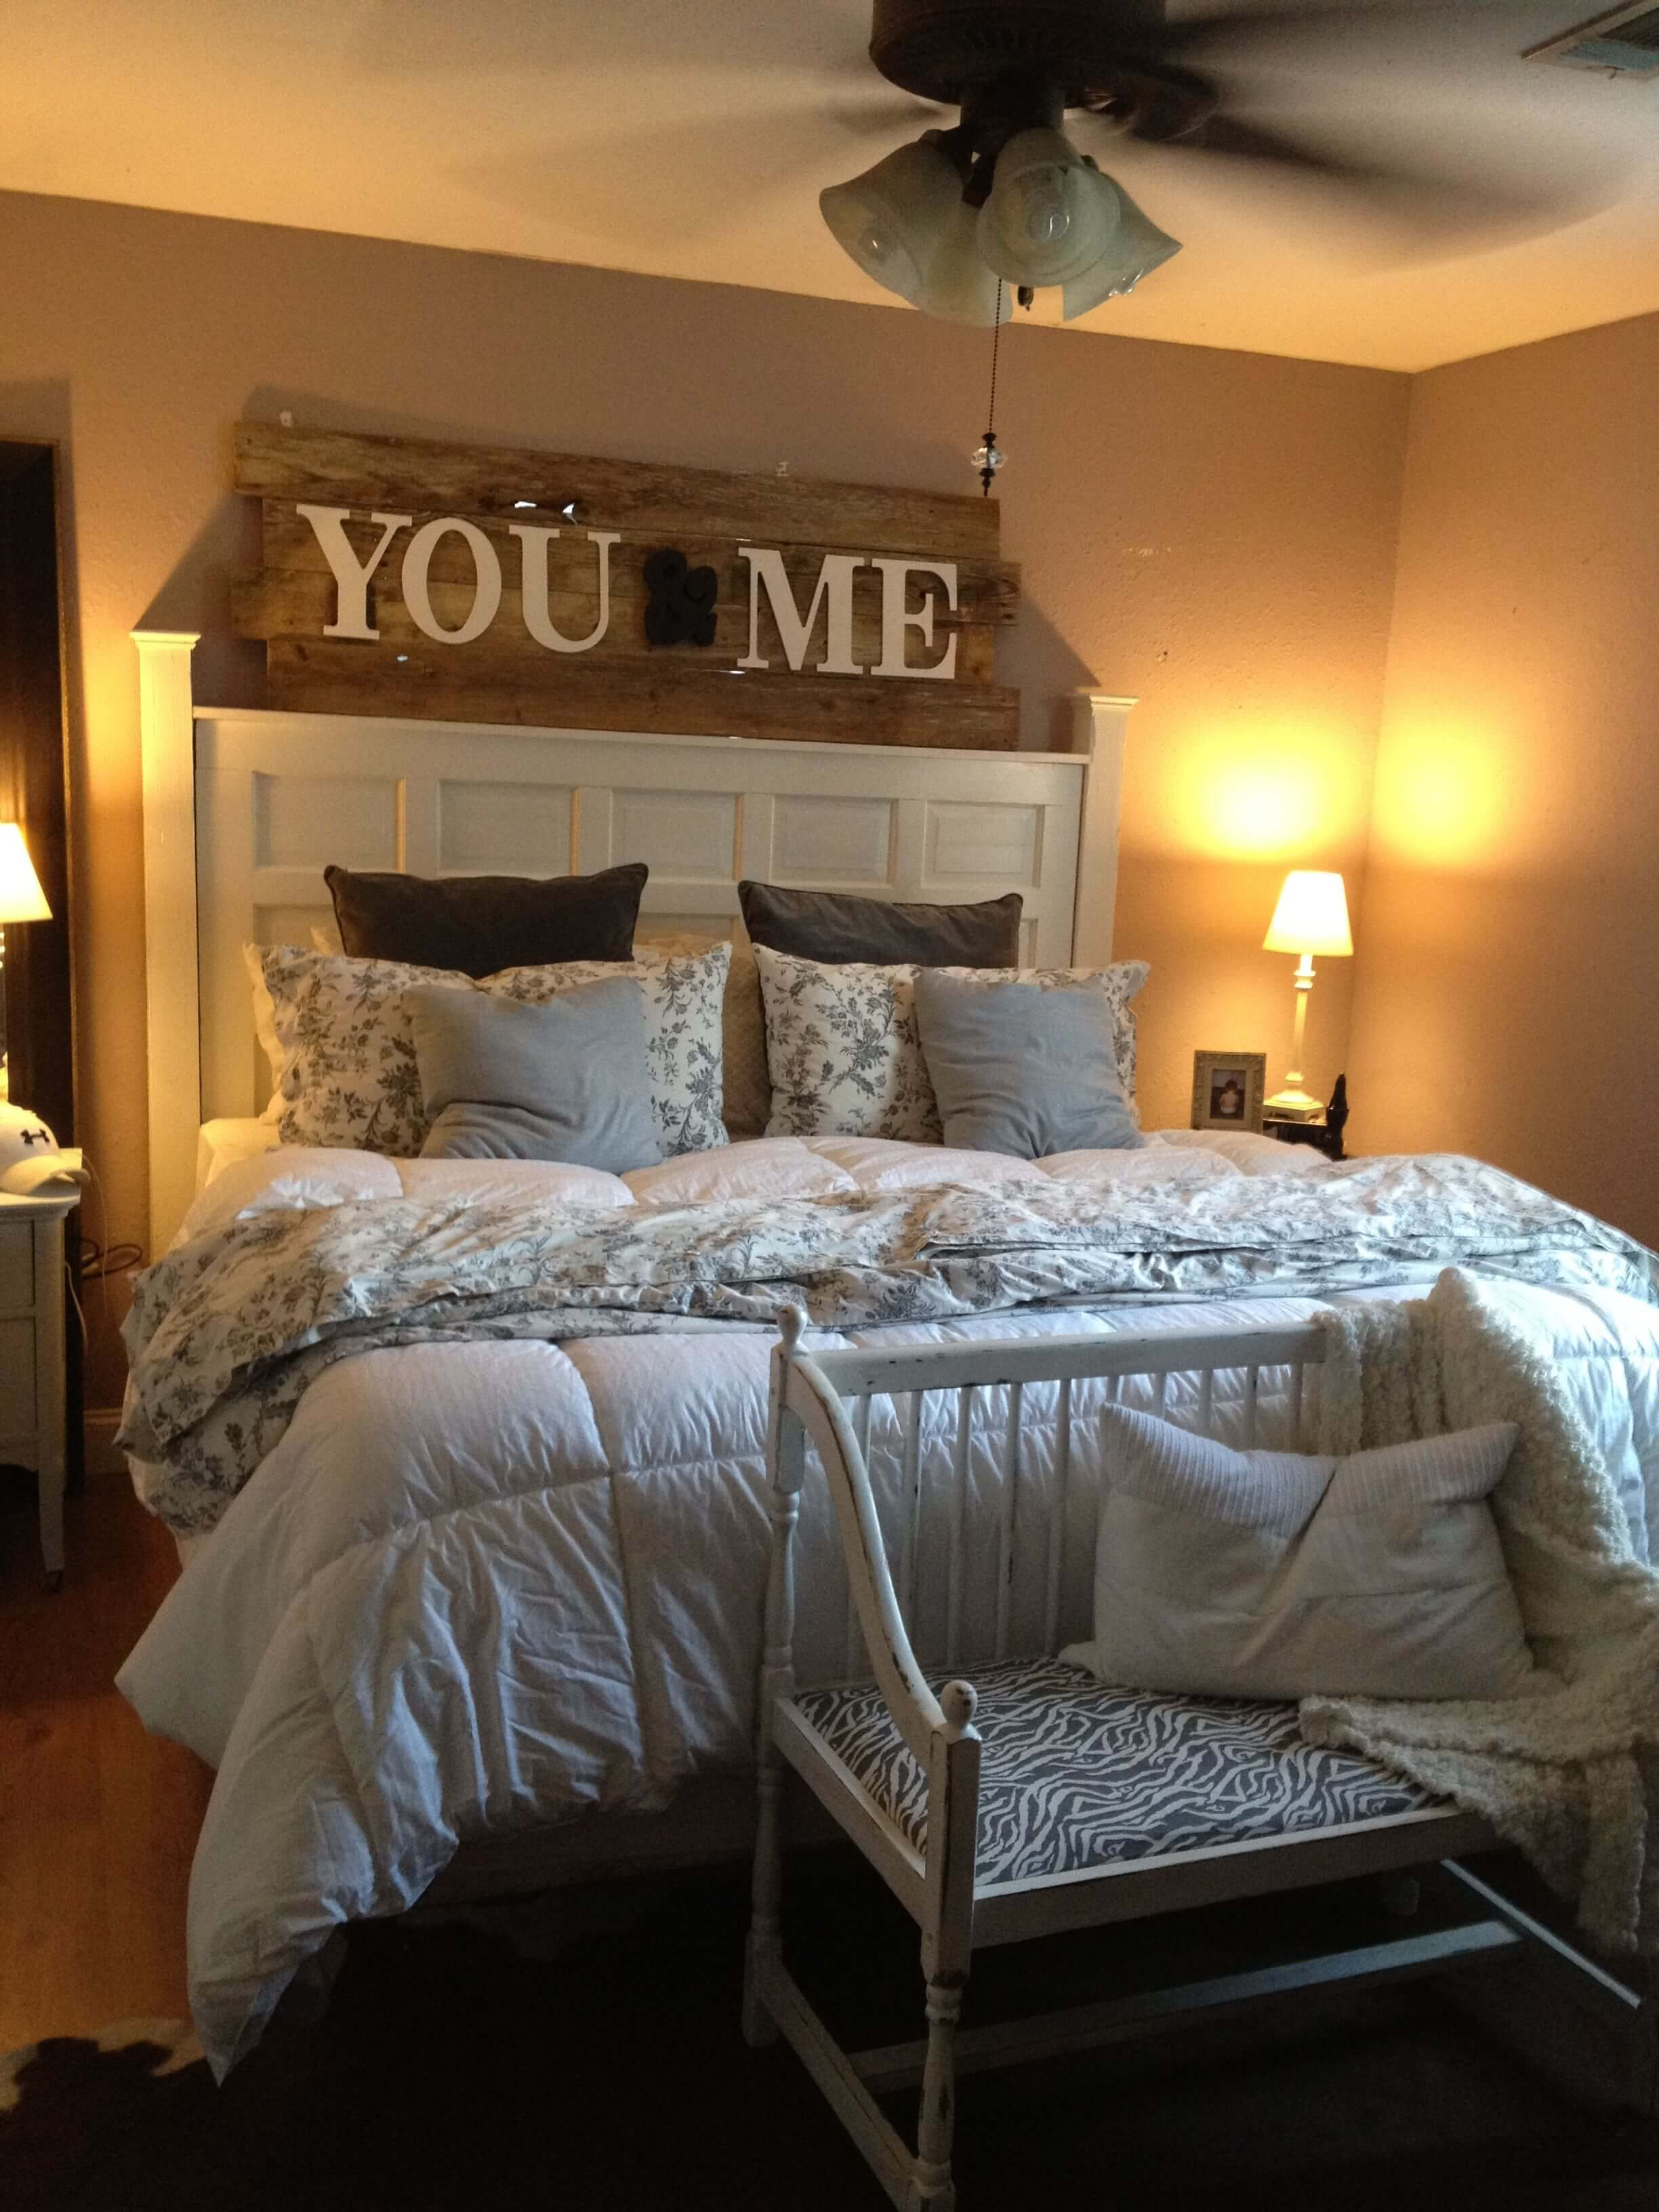 25+ Best Bedroom Wall Decor Ideas and Designs for 2020 on Bedroom Wall Decor  id=27401